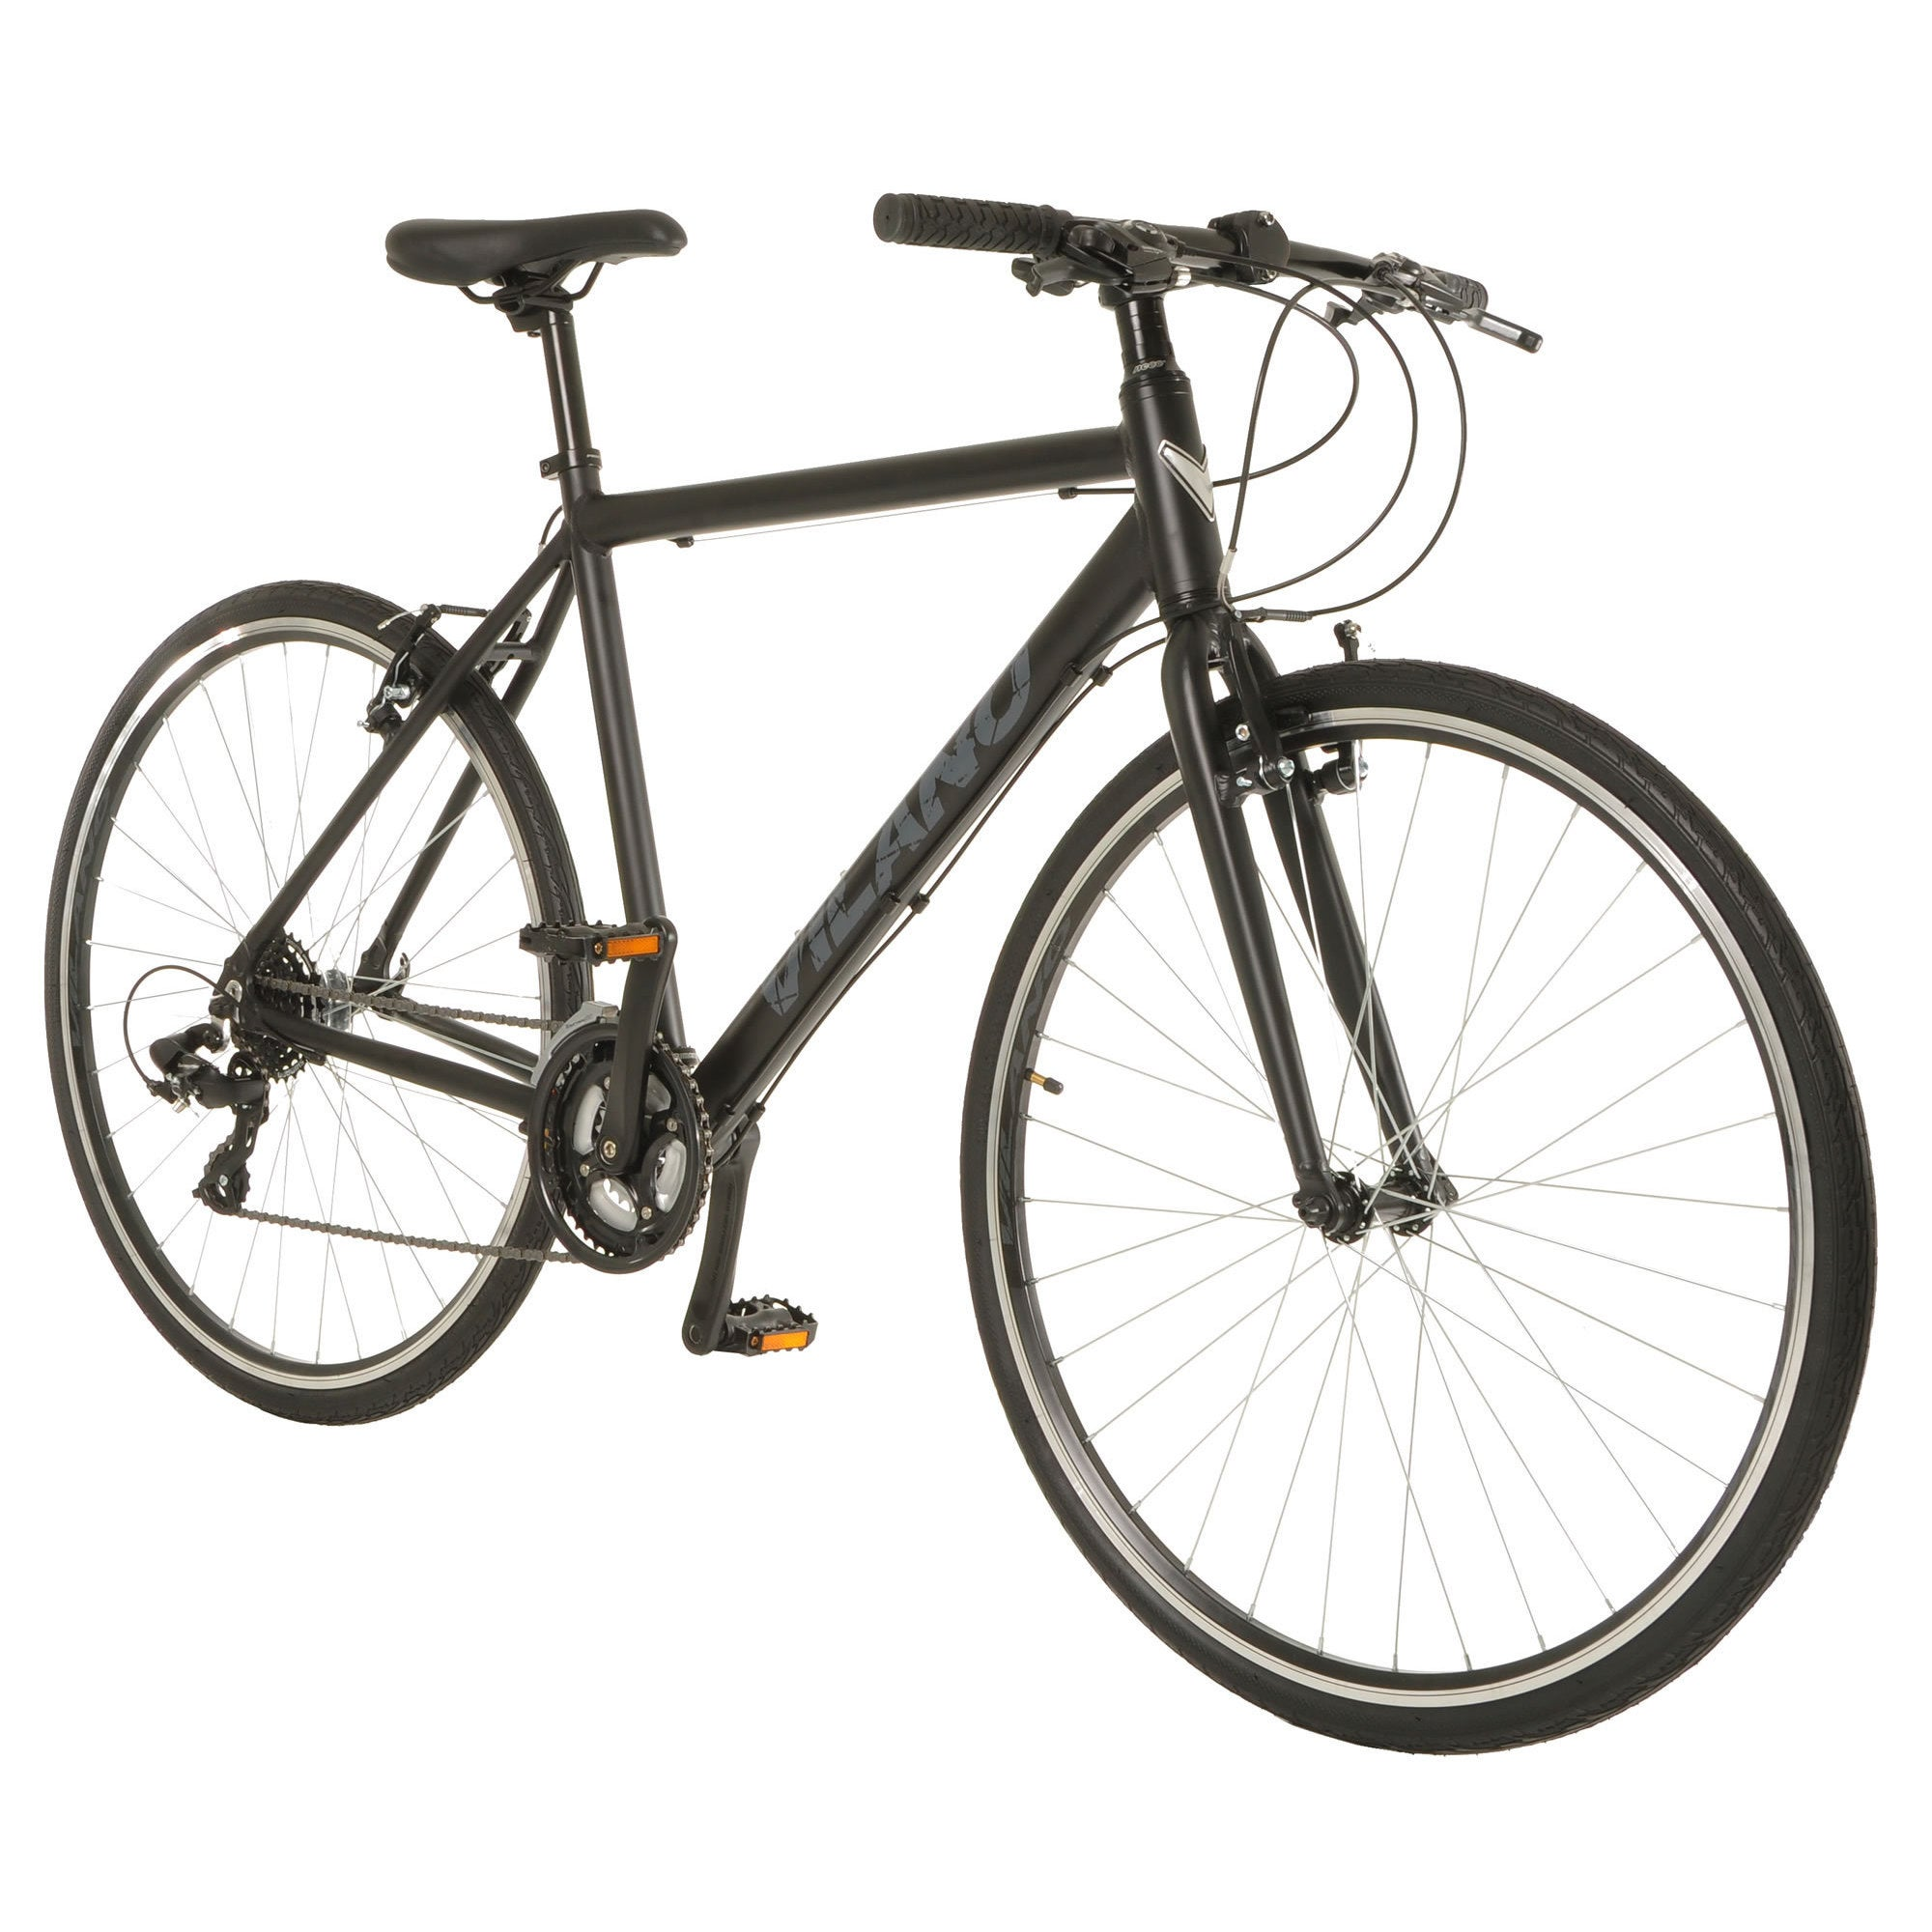 Vilano Diverse 2.0 Performance 24-speed 700c Hybrid Bike ...